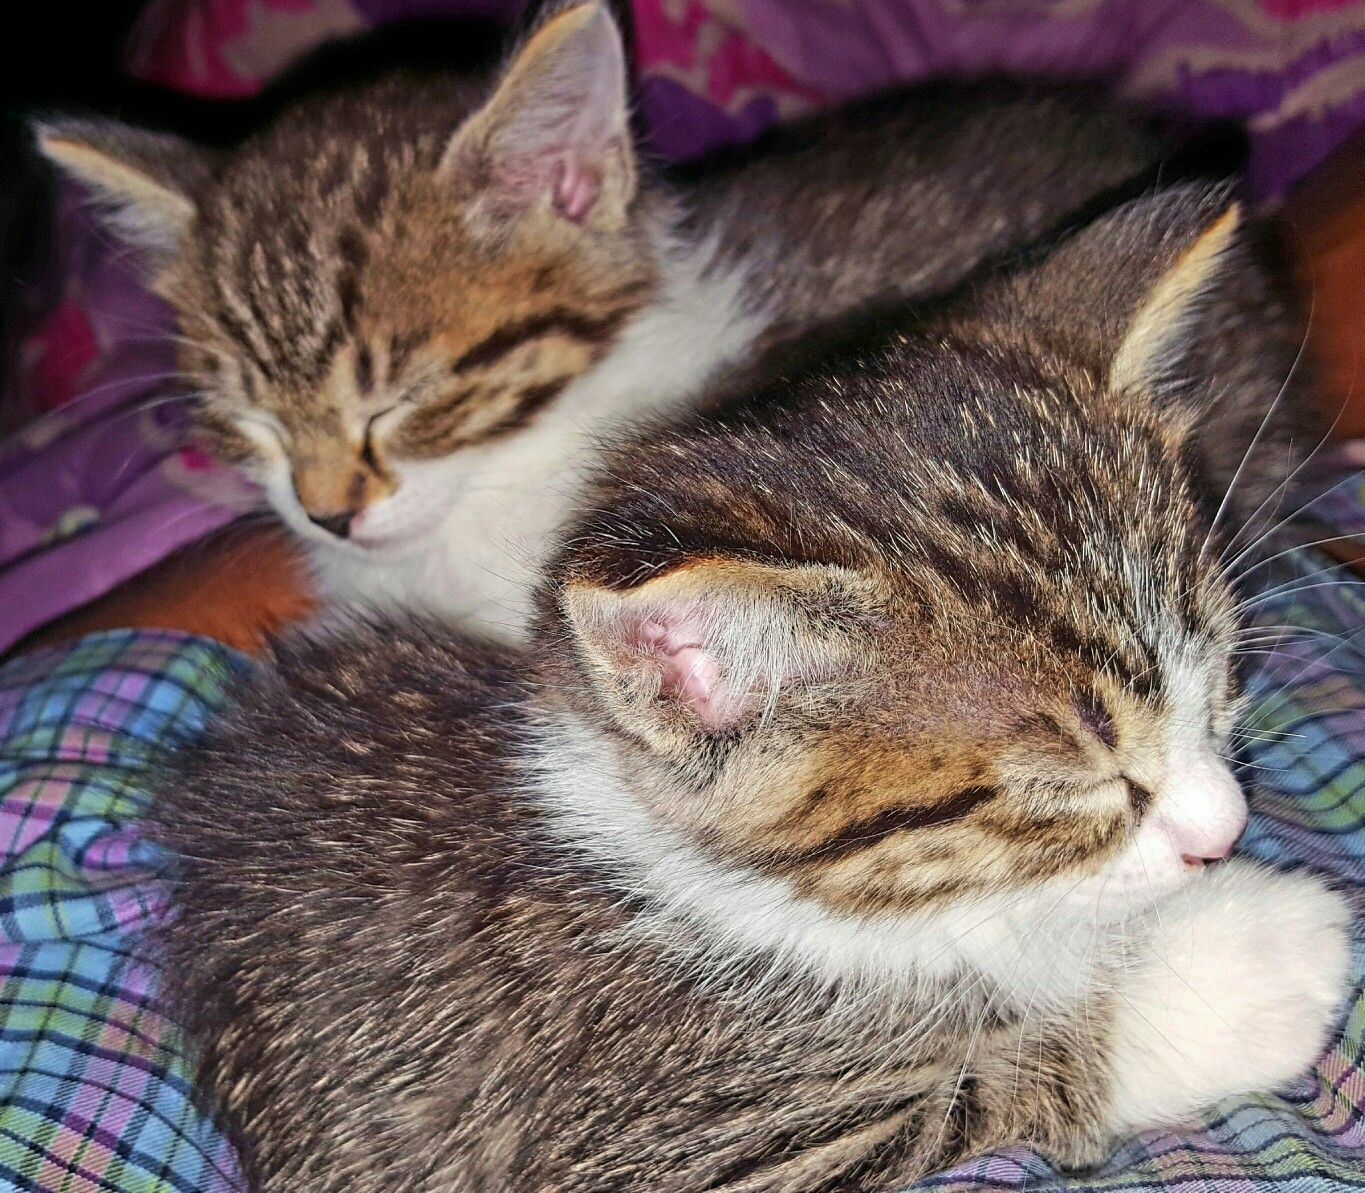 How Do I Describe Bliss Two Tiny Kittens Sleeping Peacefully In The Crook Of My Arm Sleeping Kitten Cat Pics Tiny Kitten